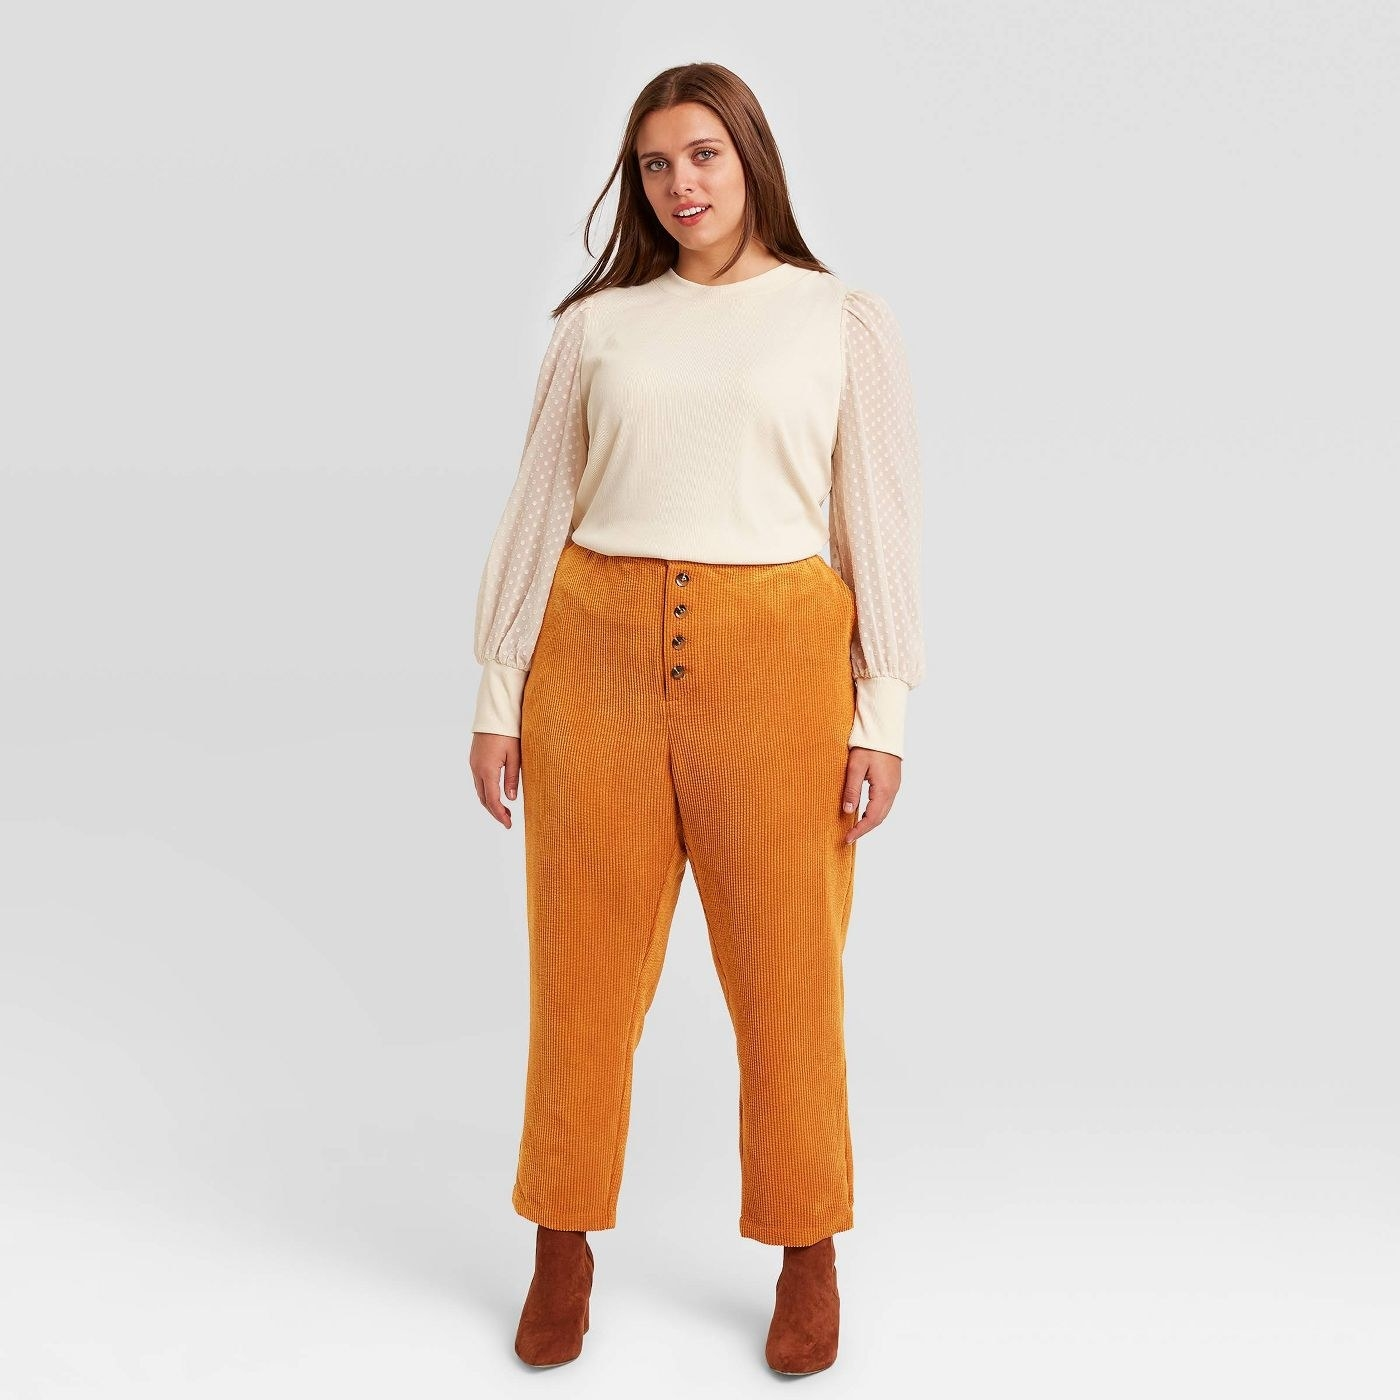 Model in orange corduroy pants and white blouse